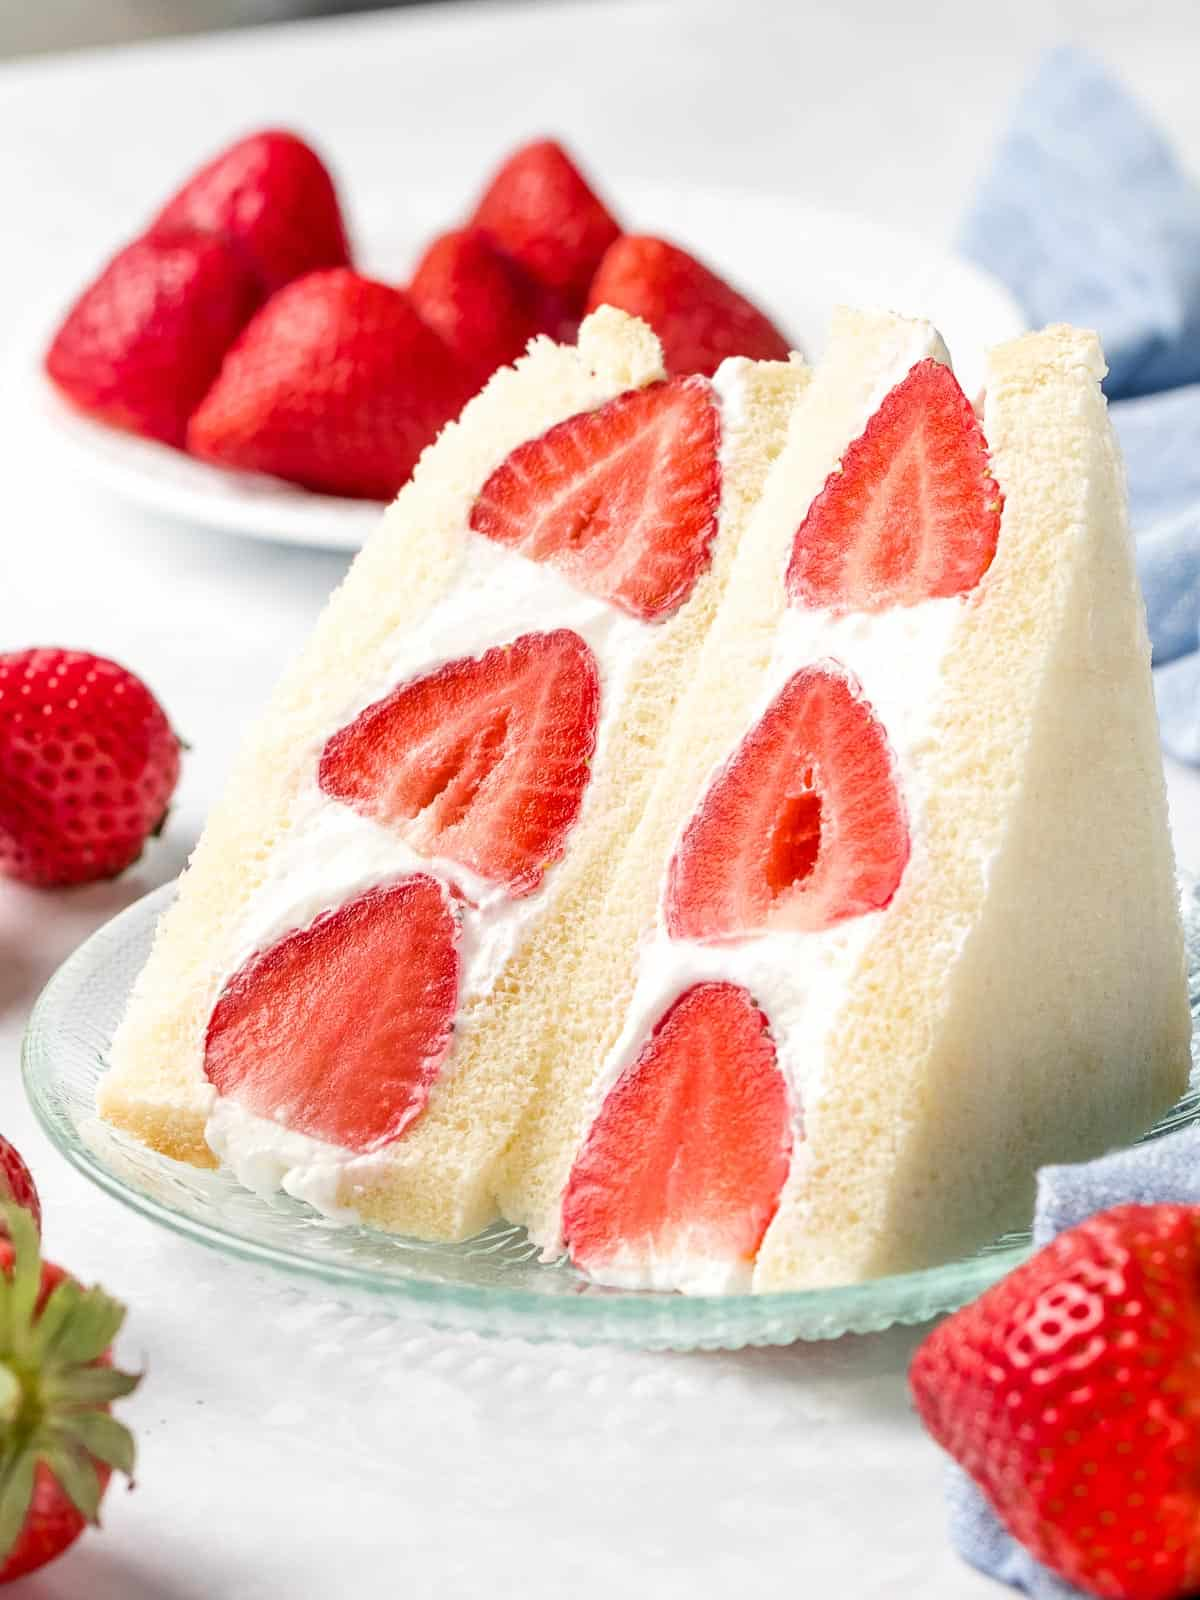 Japanese strawberry fruit sando made with soft milk bread and fluffy whipped cream sliced in half.